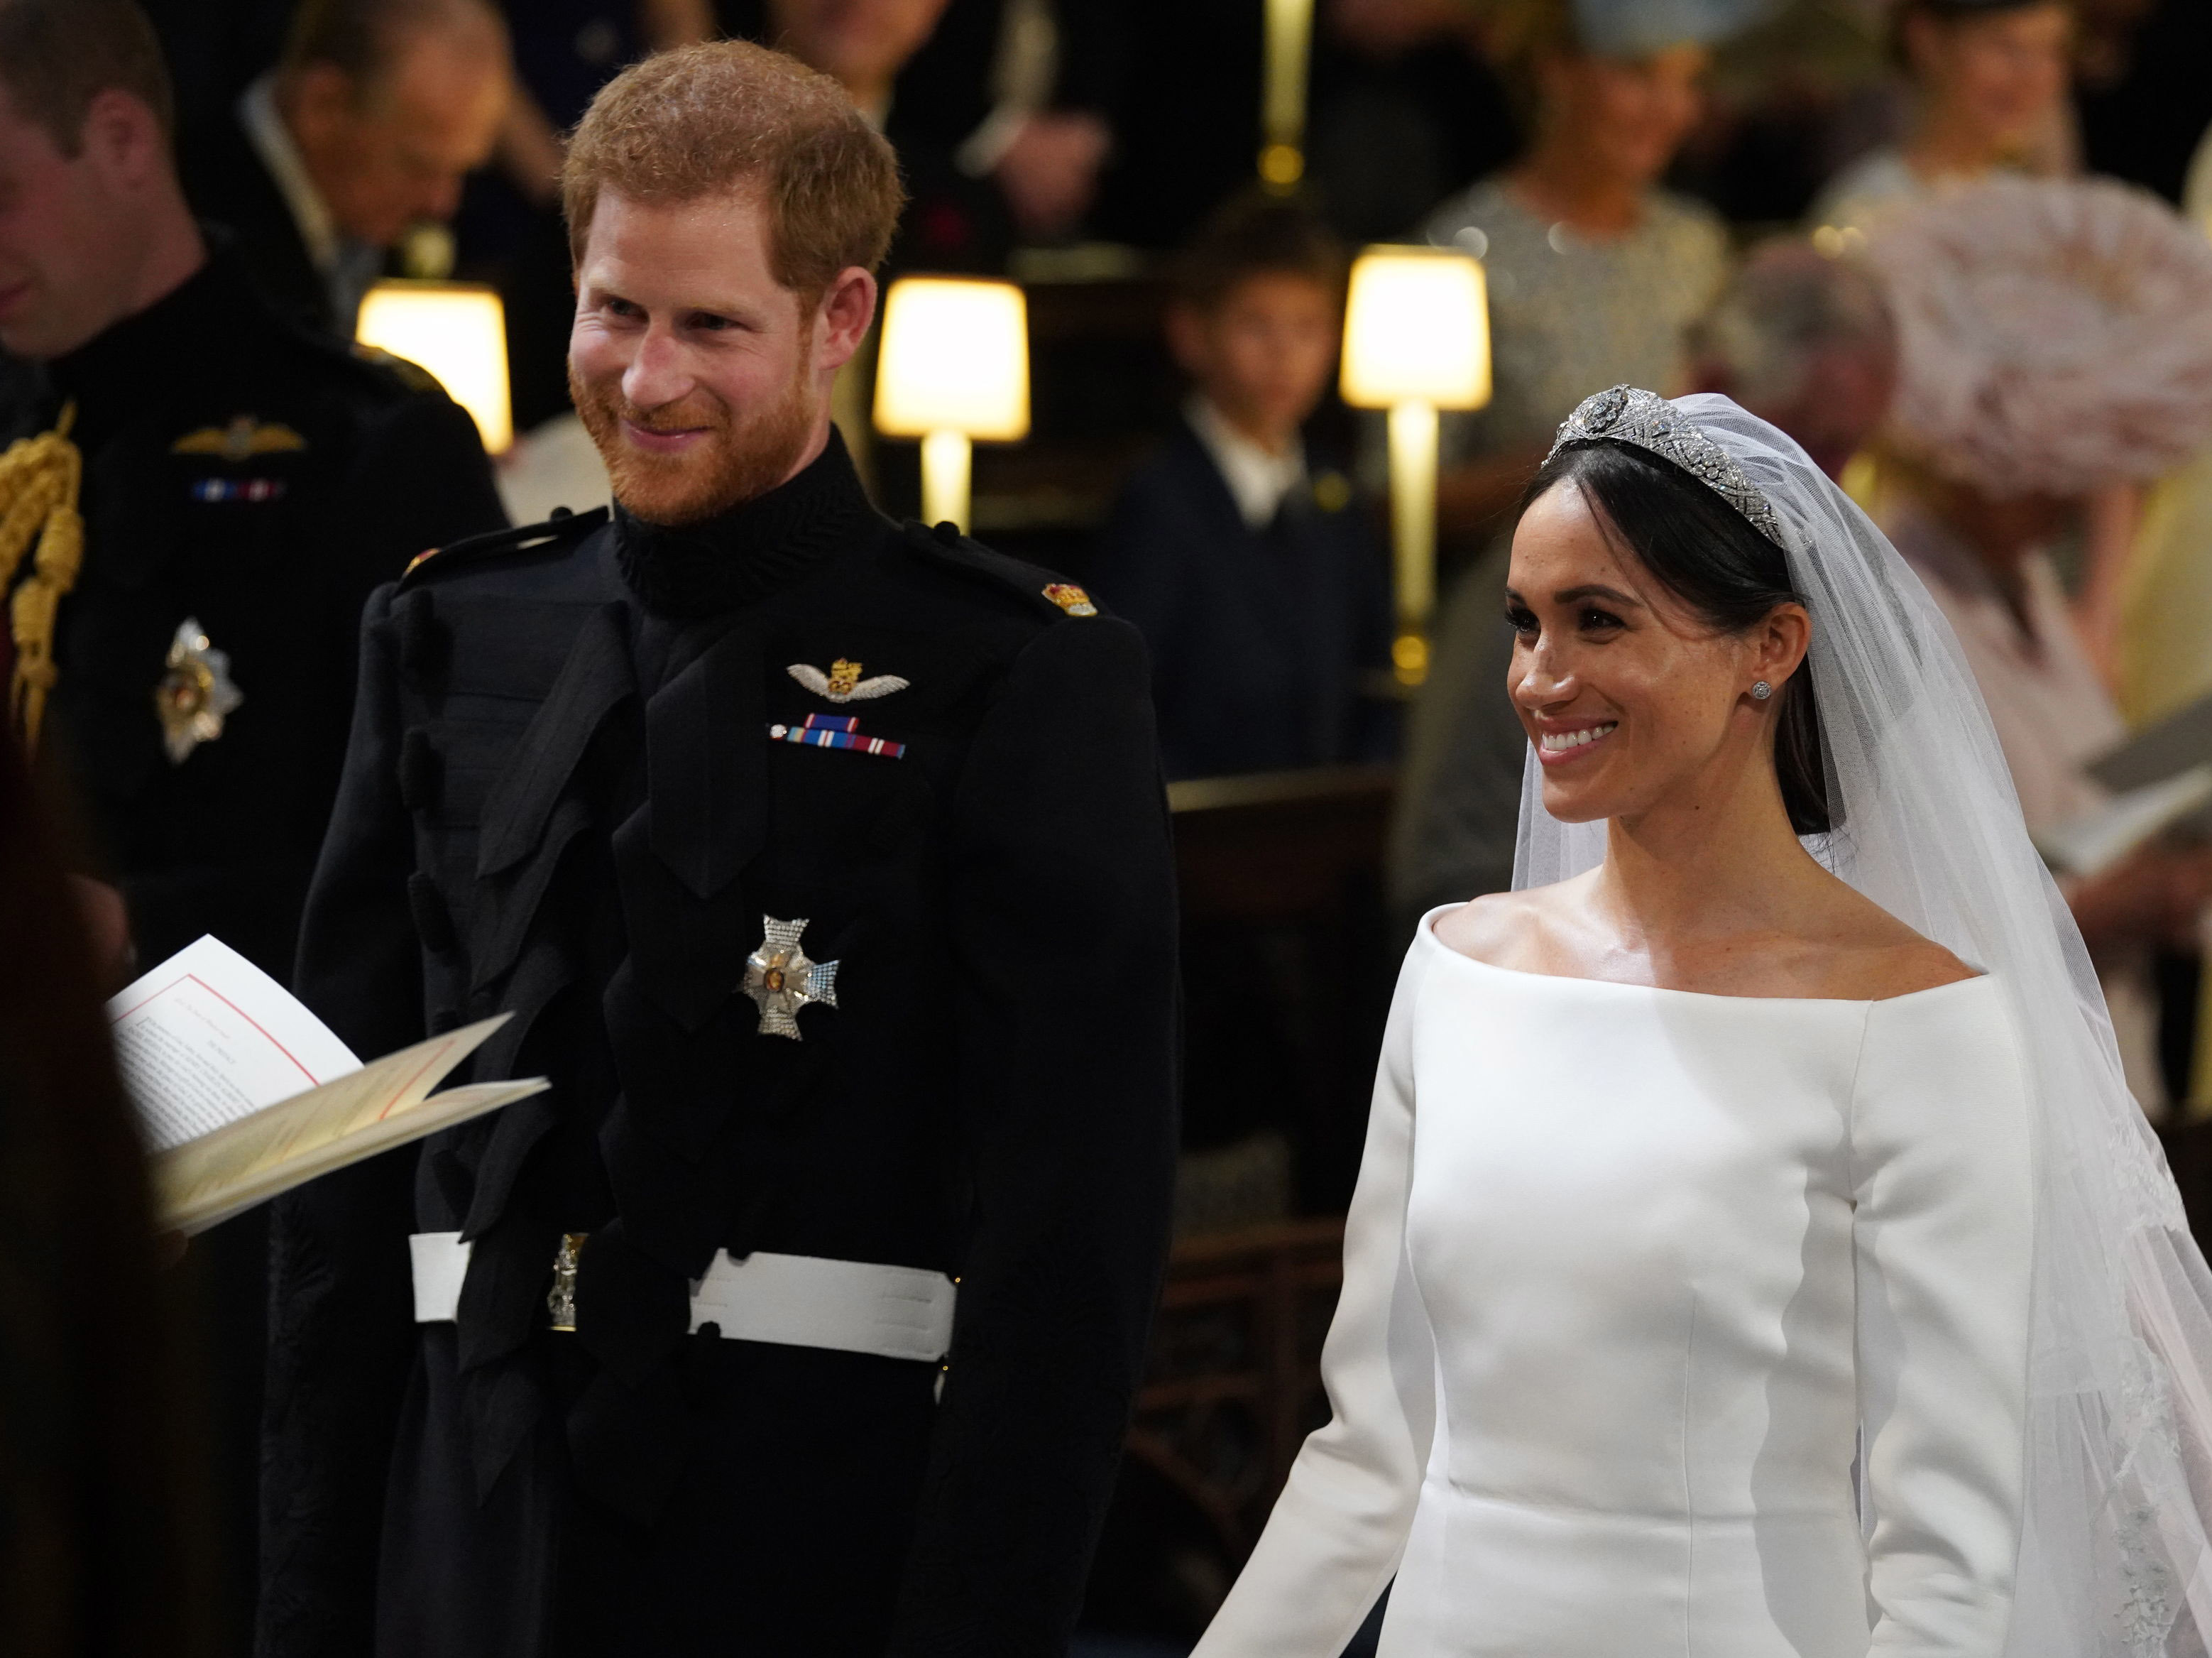 WATCH The Royal Wedding Of Prince Harry And Meghan Markle  The ...